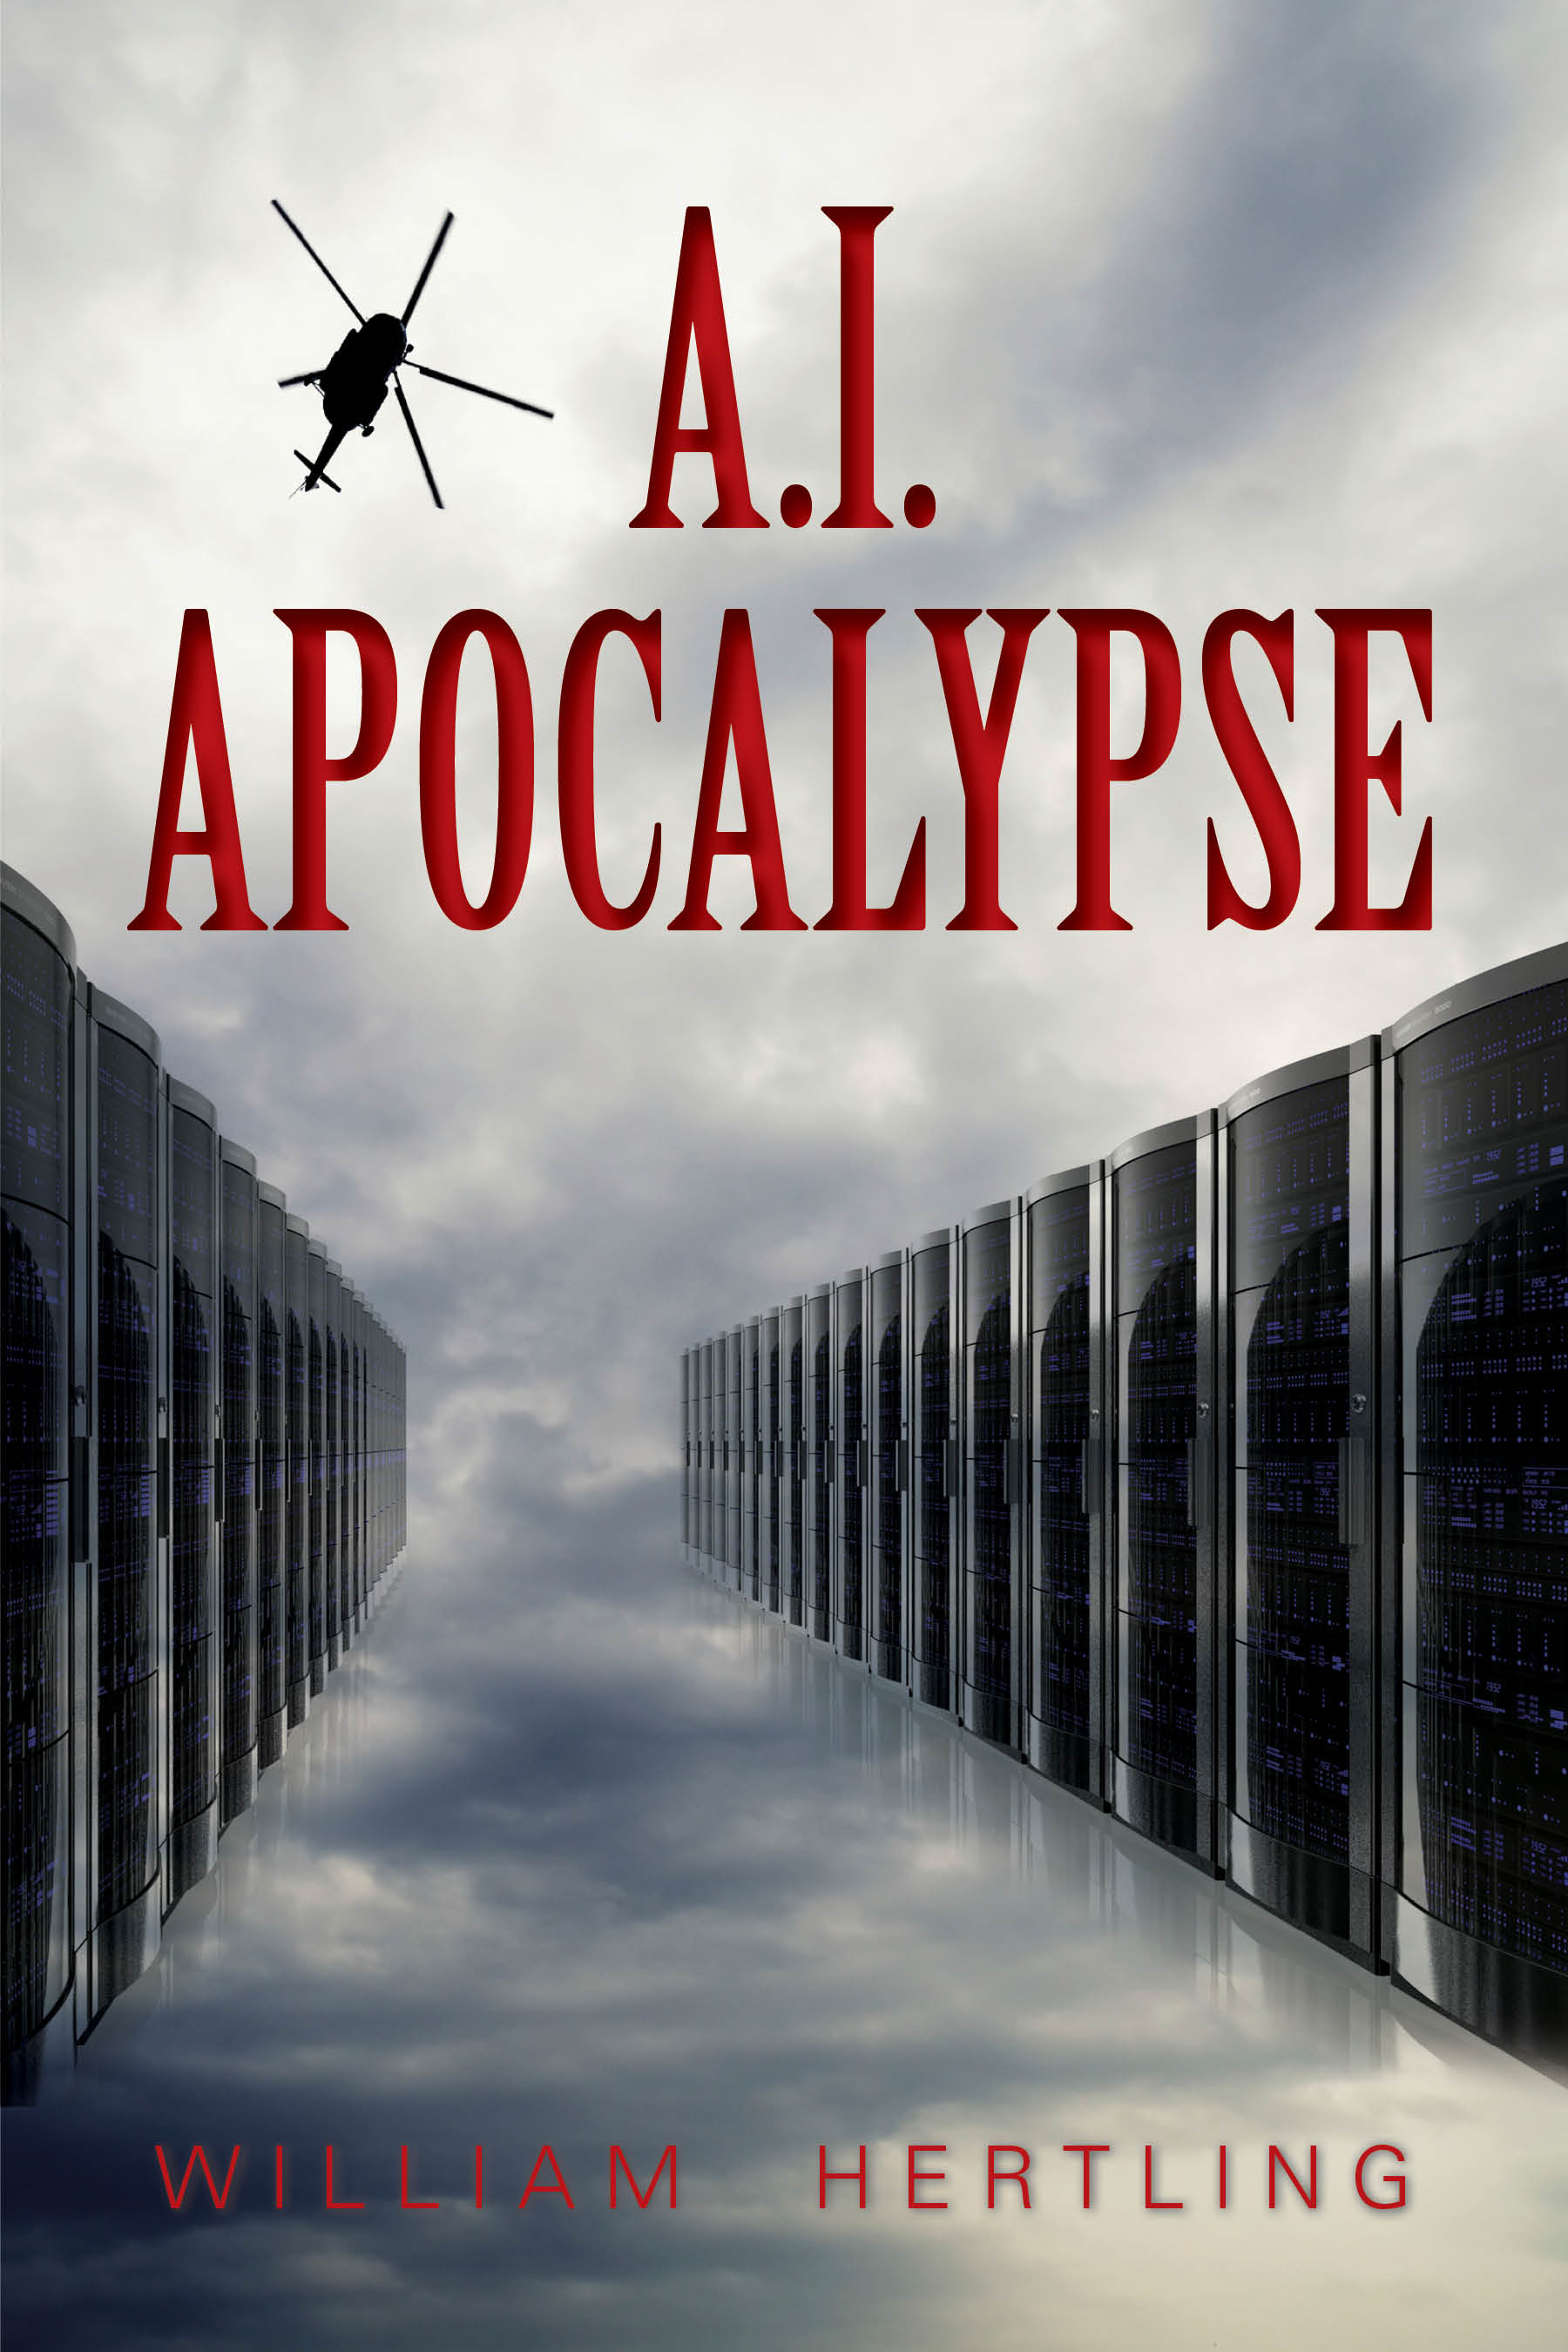 A.I. Apocalypse By: William Hertling